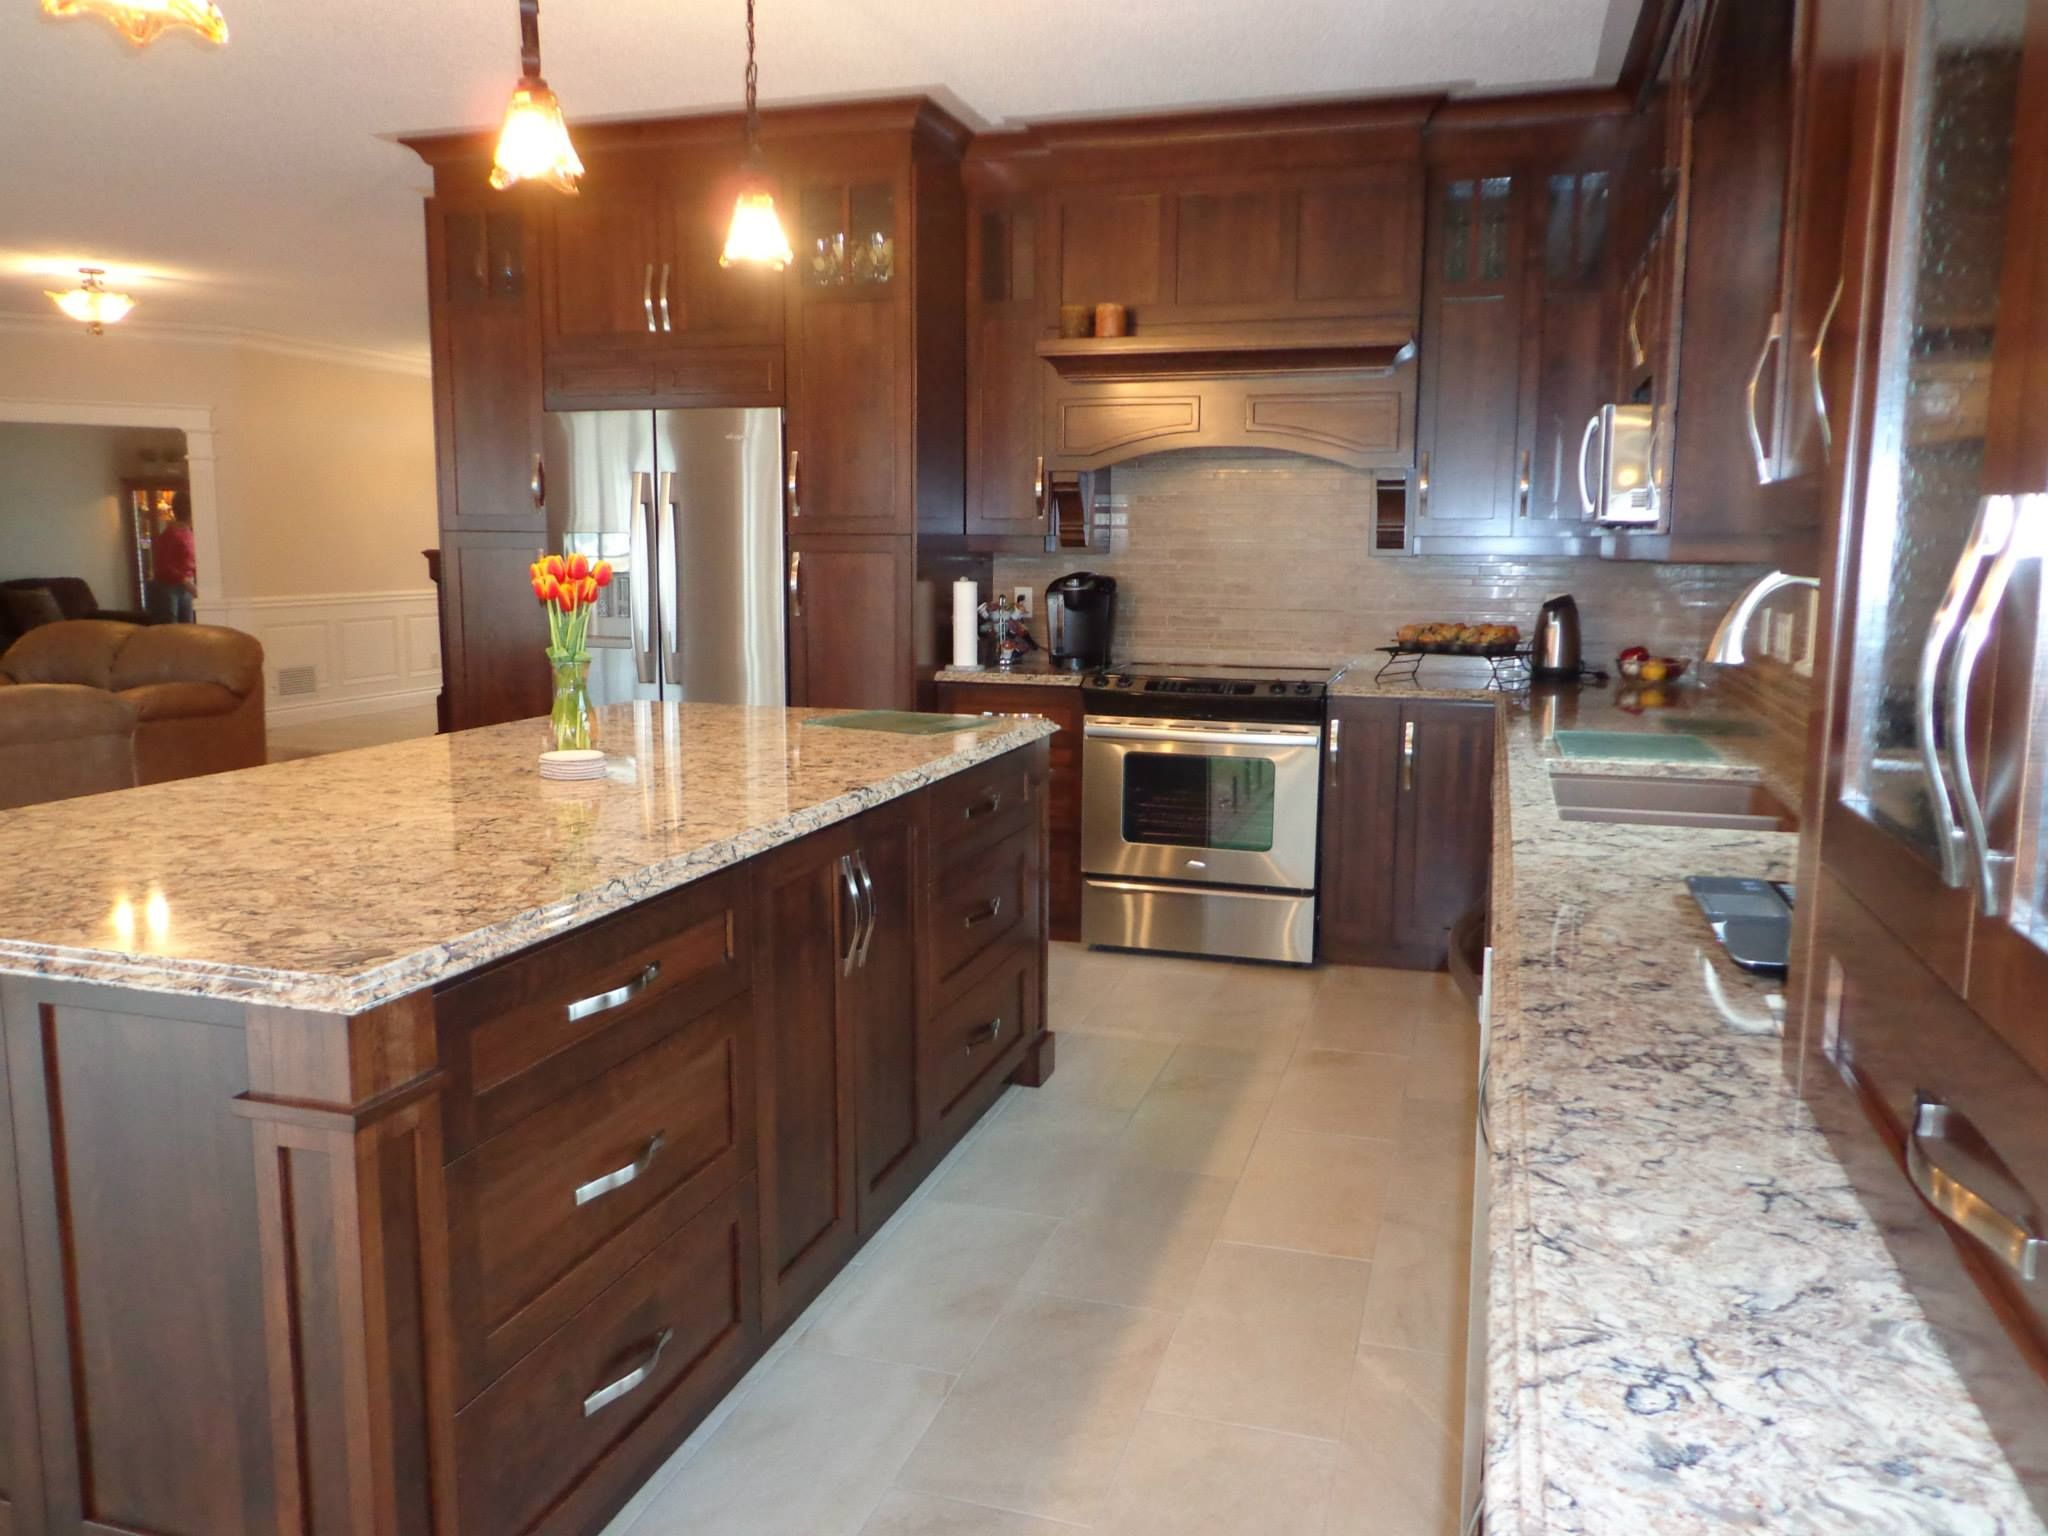 Stained cherry wood kitchen with light colored quartz